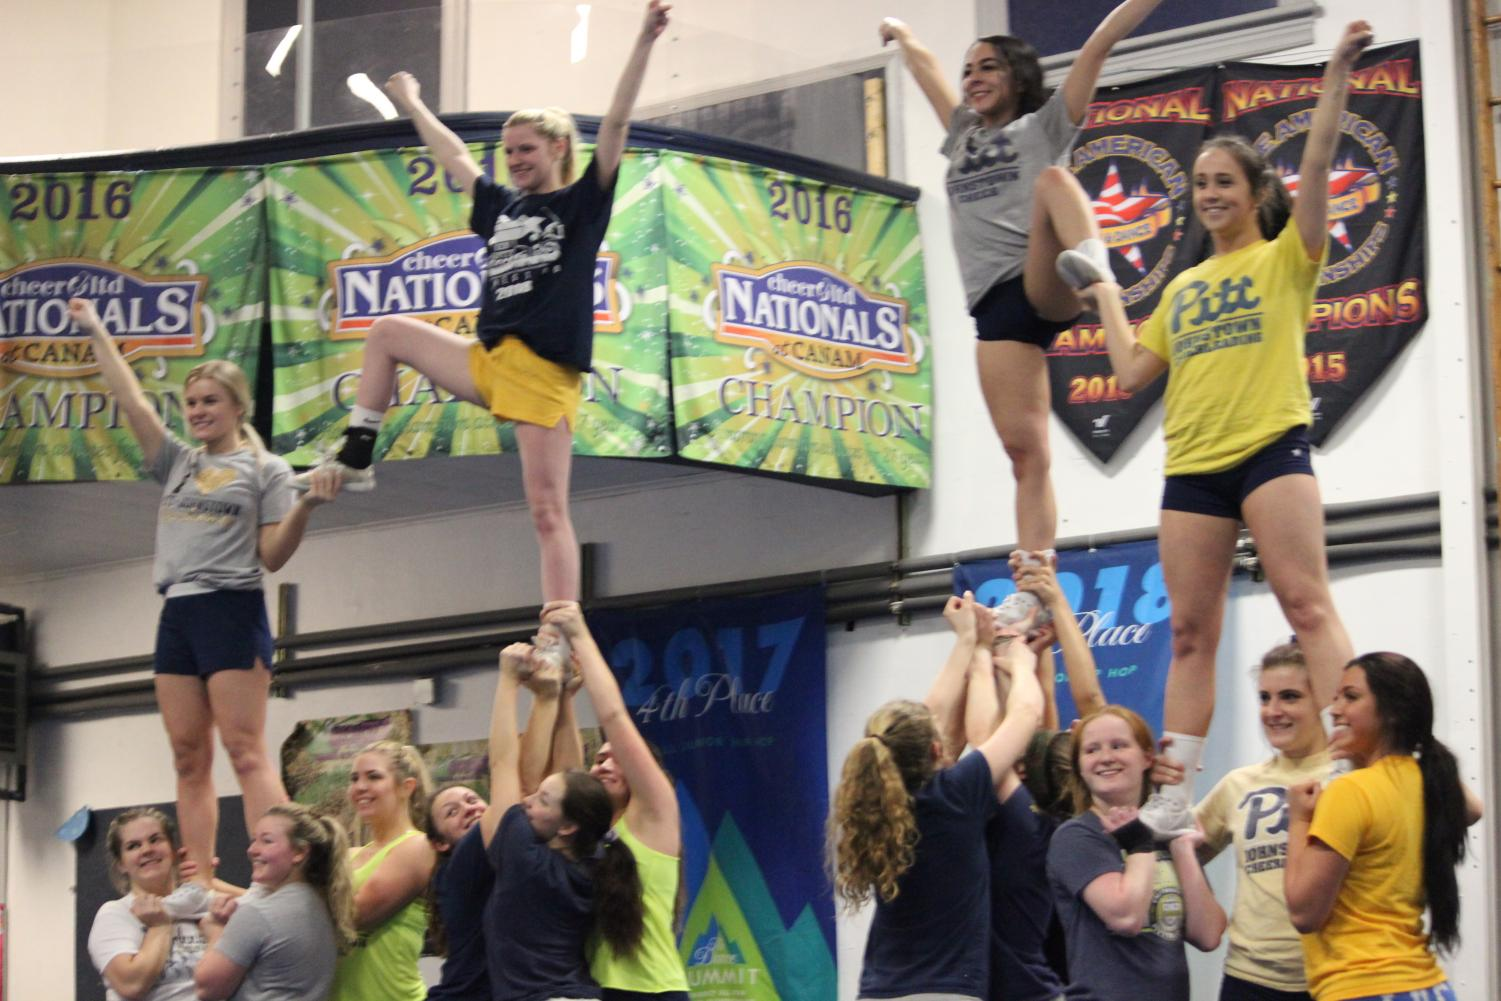 Pitt-Johnstown cheerleaders prepare Feb. 13 for The National Cheerleaders Assocaition competition at Turner's All-Star Cheerleading.